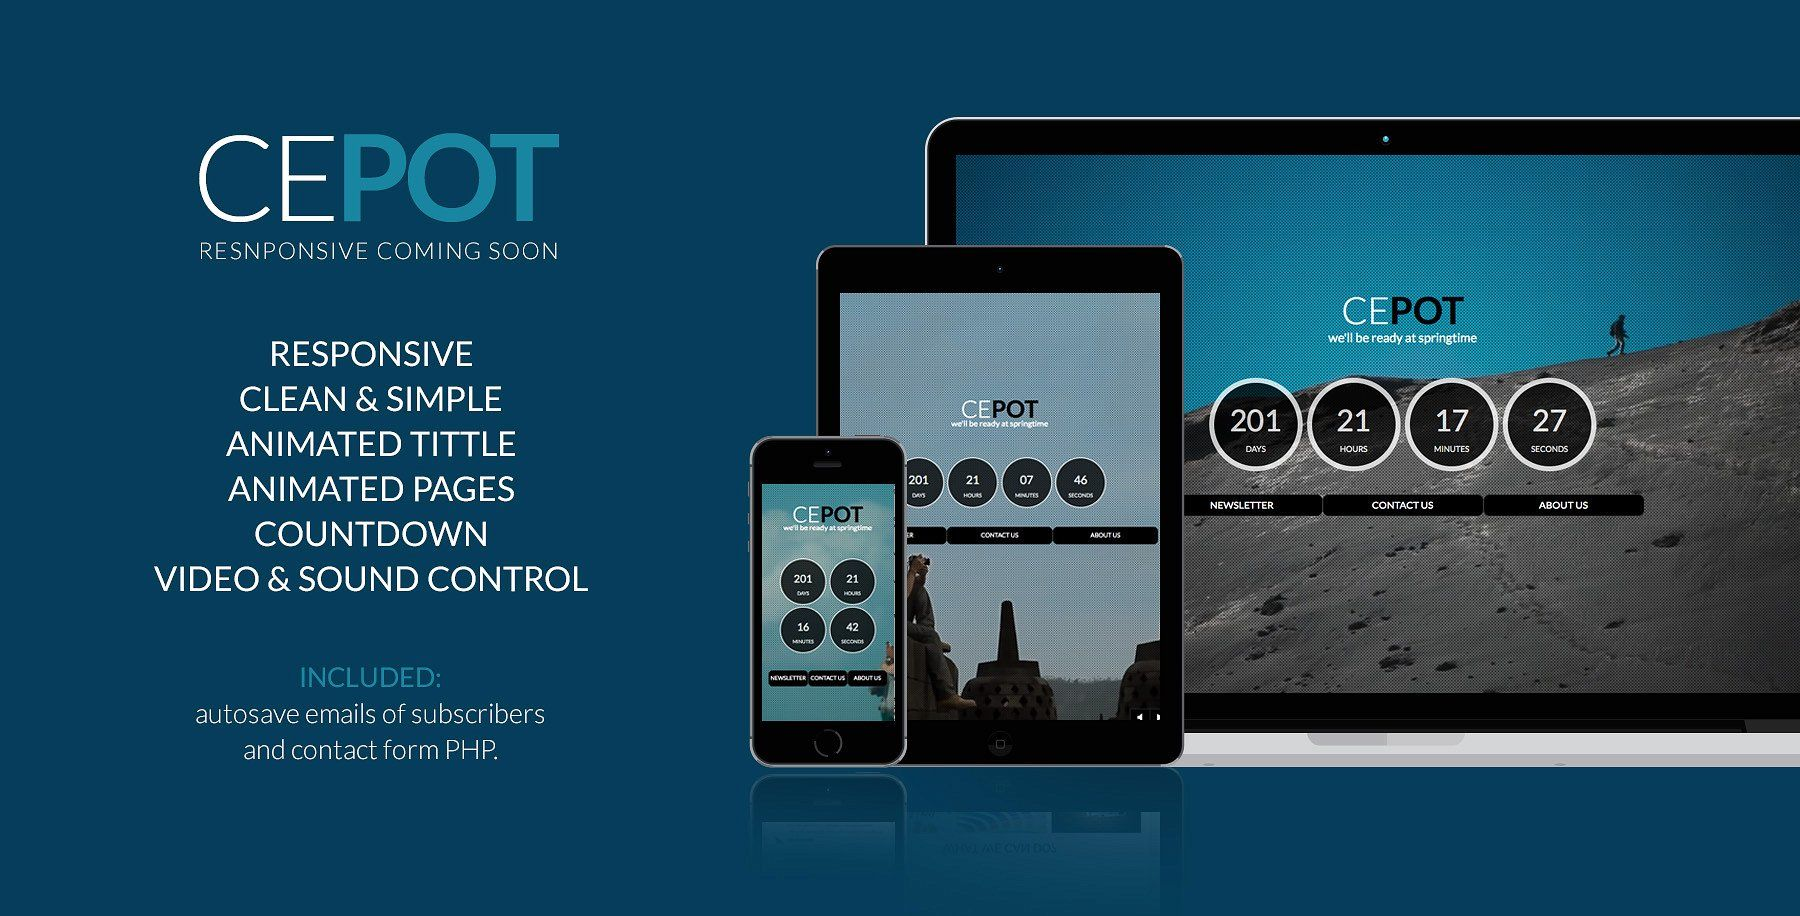 Cepot Coming Soon Video Background Social Information Business